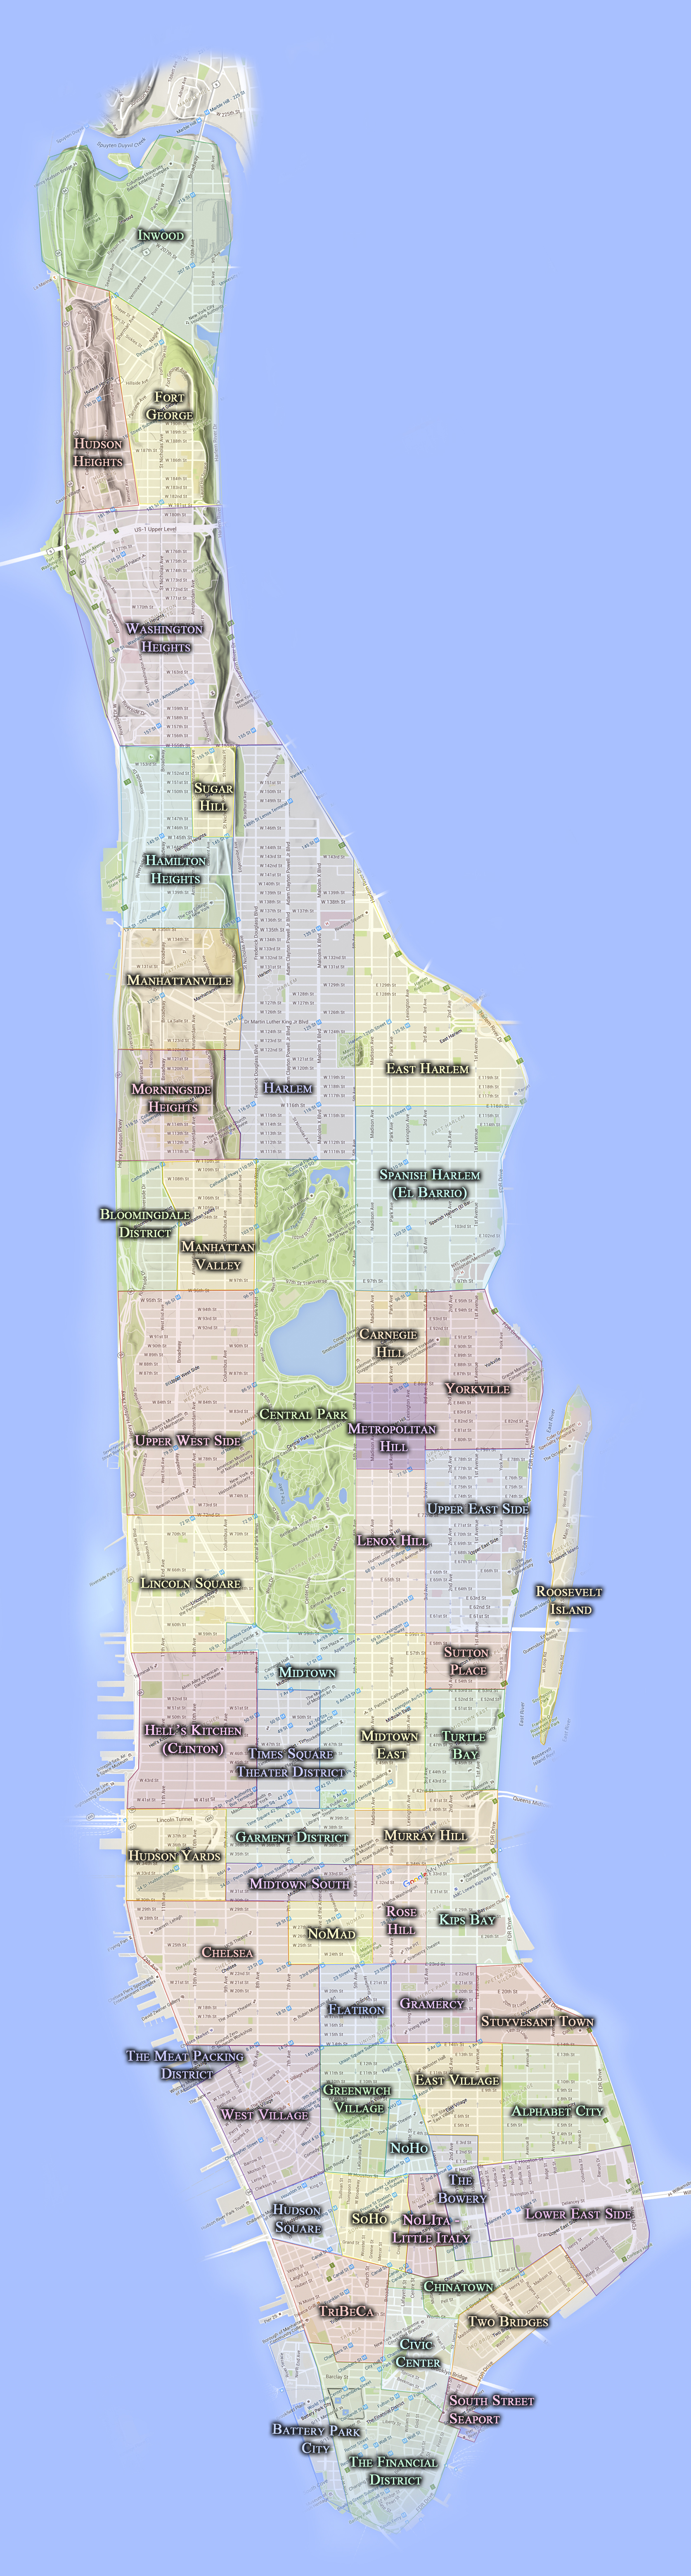 Neighborhoods — CityNeighborhoods.NYC on manhattan bus routes, new york city street grid map, manhattan tv series, manhattan midtown, new york times square hotel map, new york city 1860 map, san francisco tenderloin area map, new york city walking map, manhattan areas, lower east side new york map, new york city times square map, manhattan financial district skyline, manhattan jewelry heist, manhattan satellite, manhattan tumblr, new jersey and staten island map, central park map, new york city boroughs map, manhattan spring, westchester county new york zip code map,